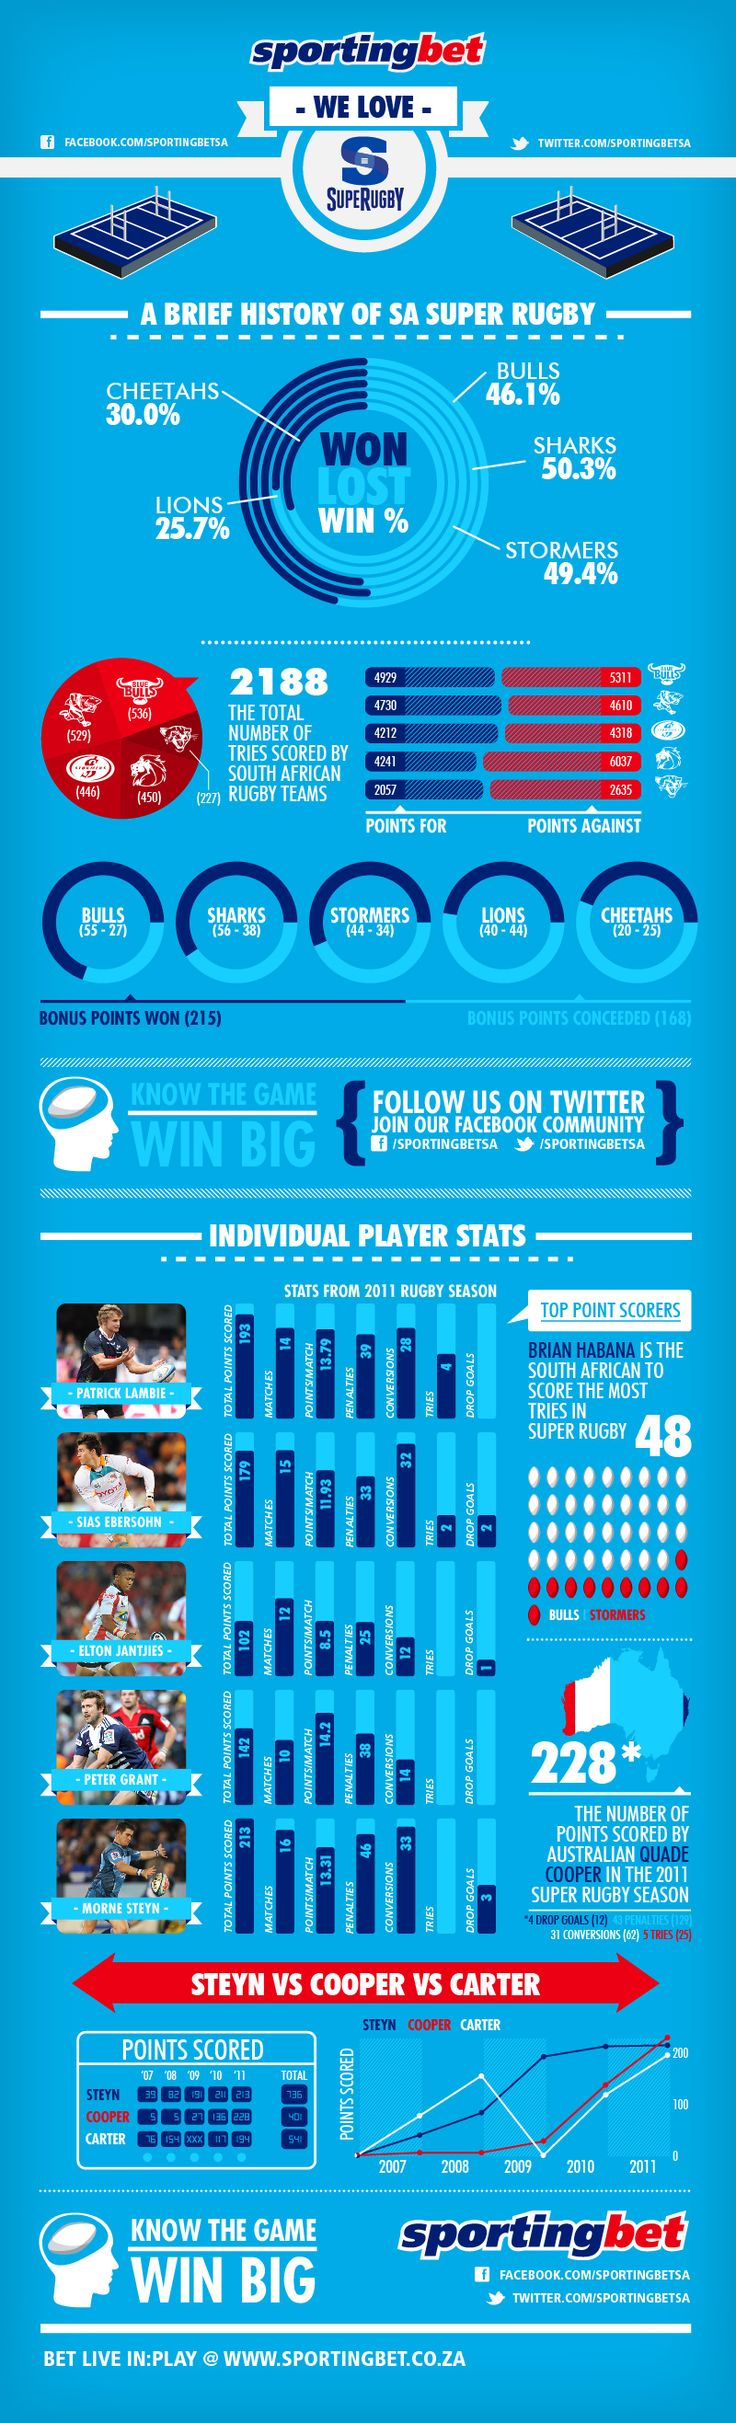 Sportingbet Super Rugby Infographic 2